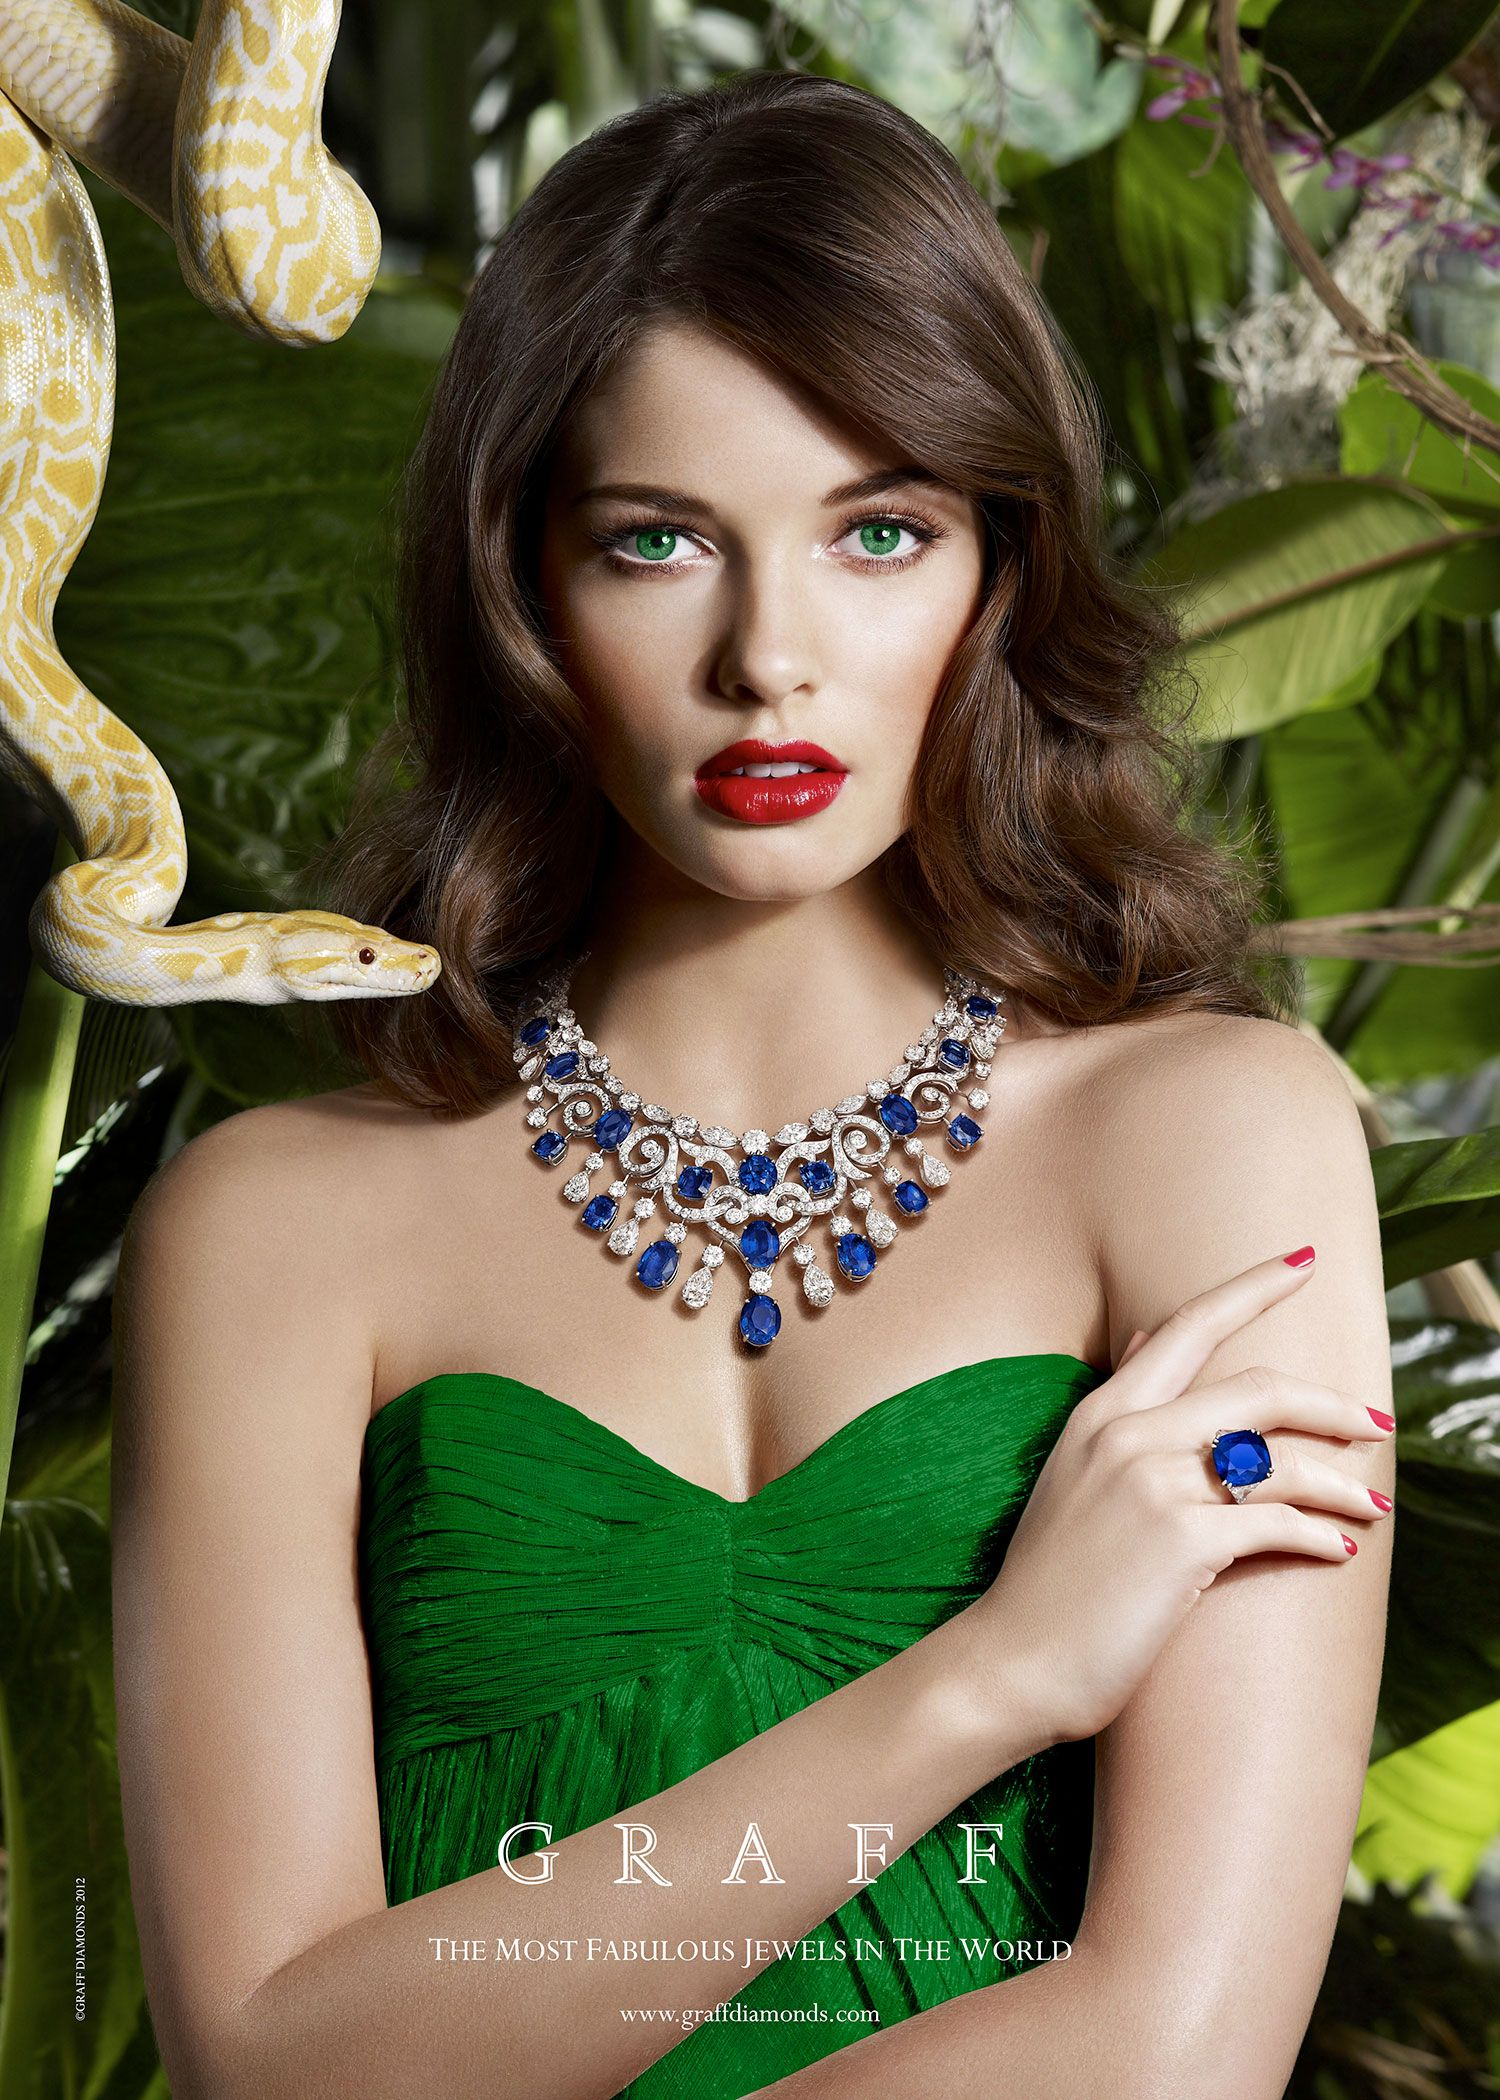 Graff Summer Sapphire The Ultimate Something Blue Fashion Jewellery Advertising Jewelry Ads